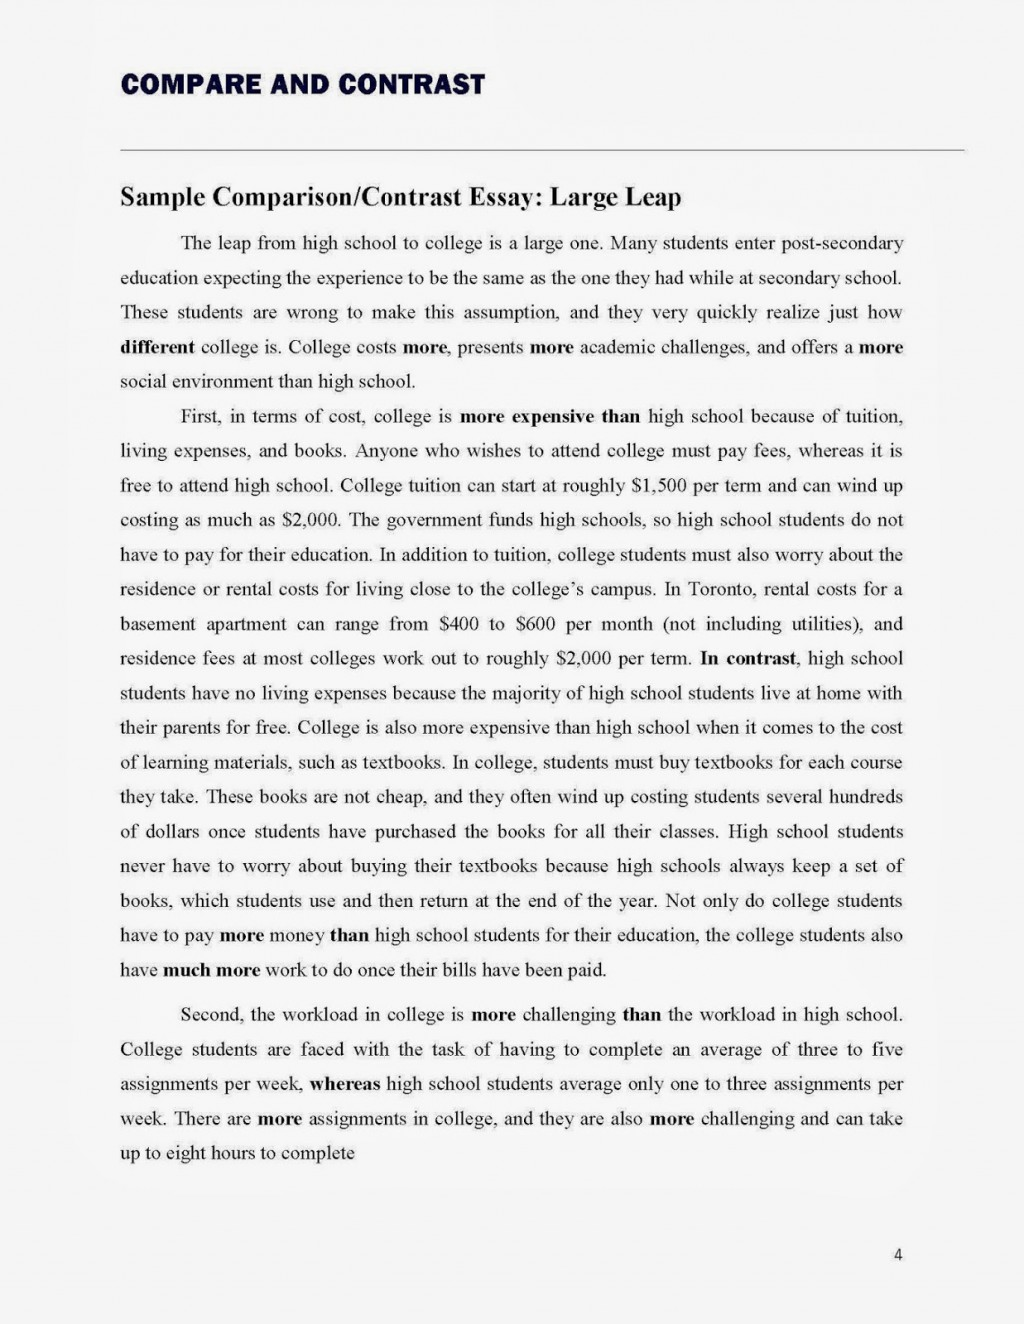 003 Compareandcontrastessay Page 4h125 Compare Essay Beautiful Contrast Topics Ielts Examples College Middle School Large